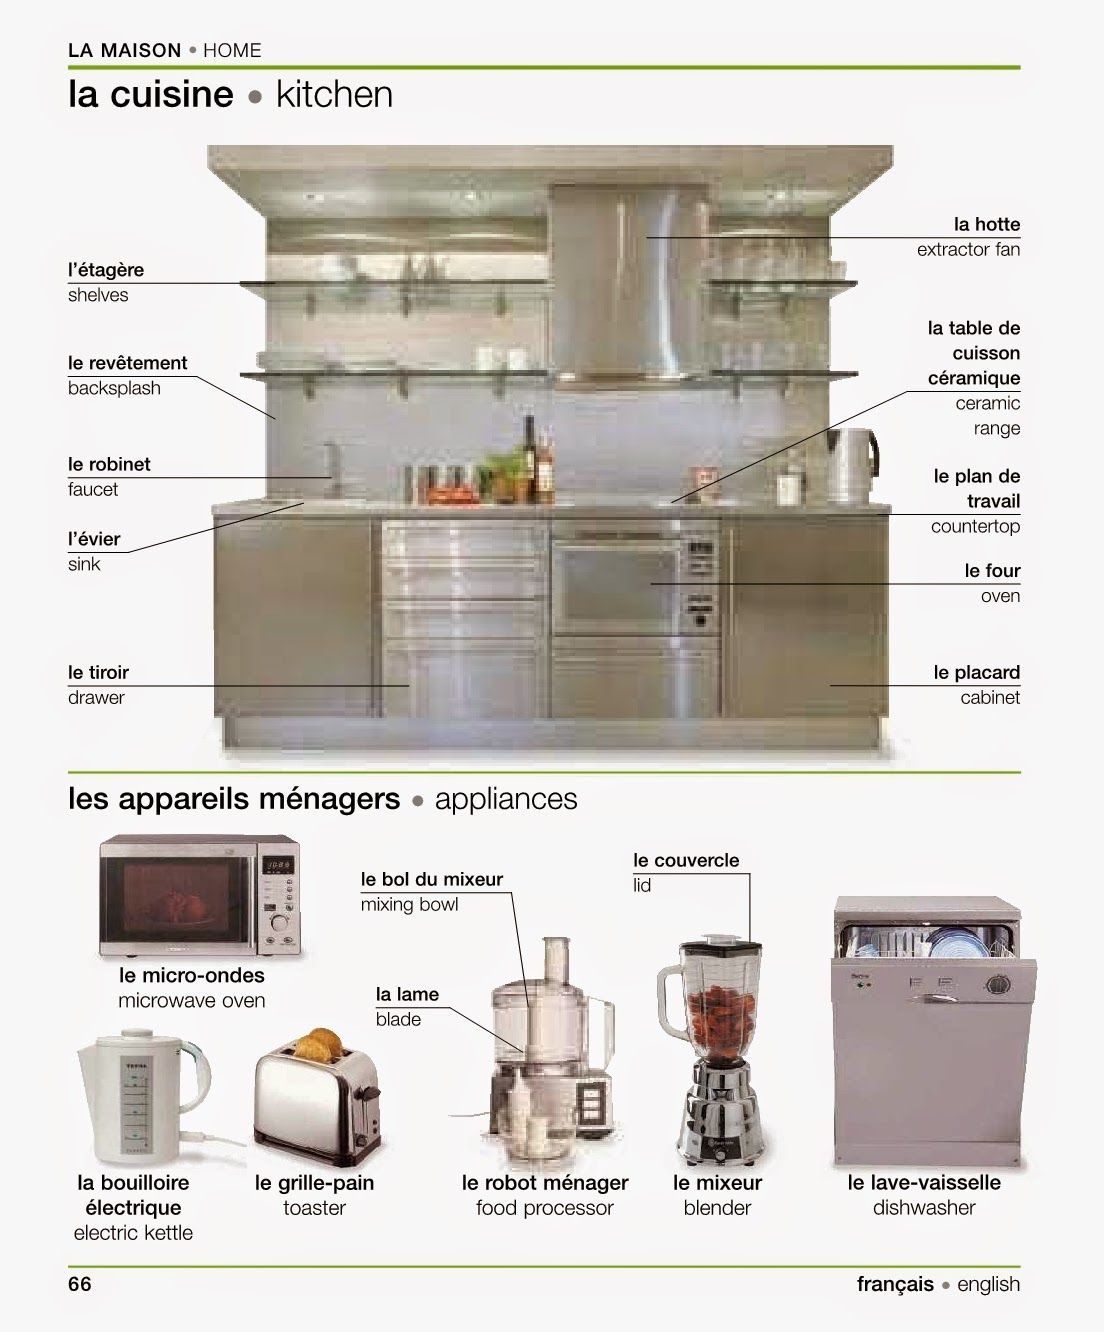 Vocabulaire la maison la cuisine vocabulary for Anglais vocabulaire cuisine